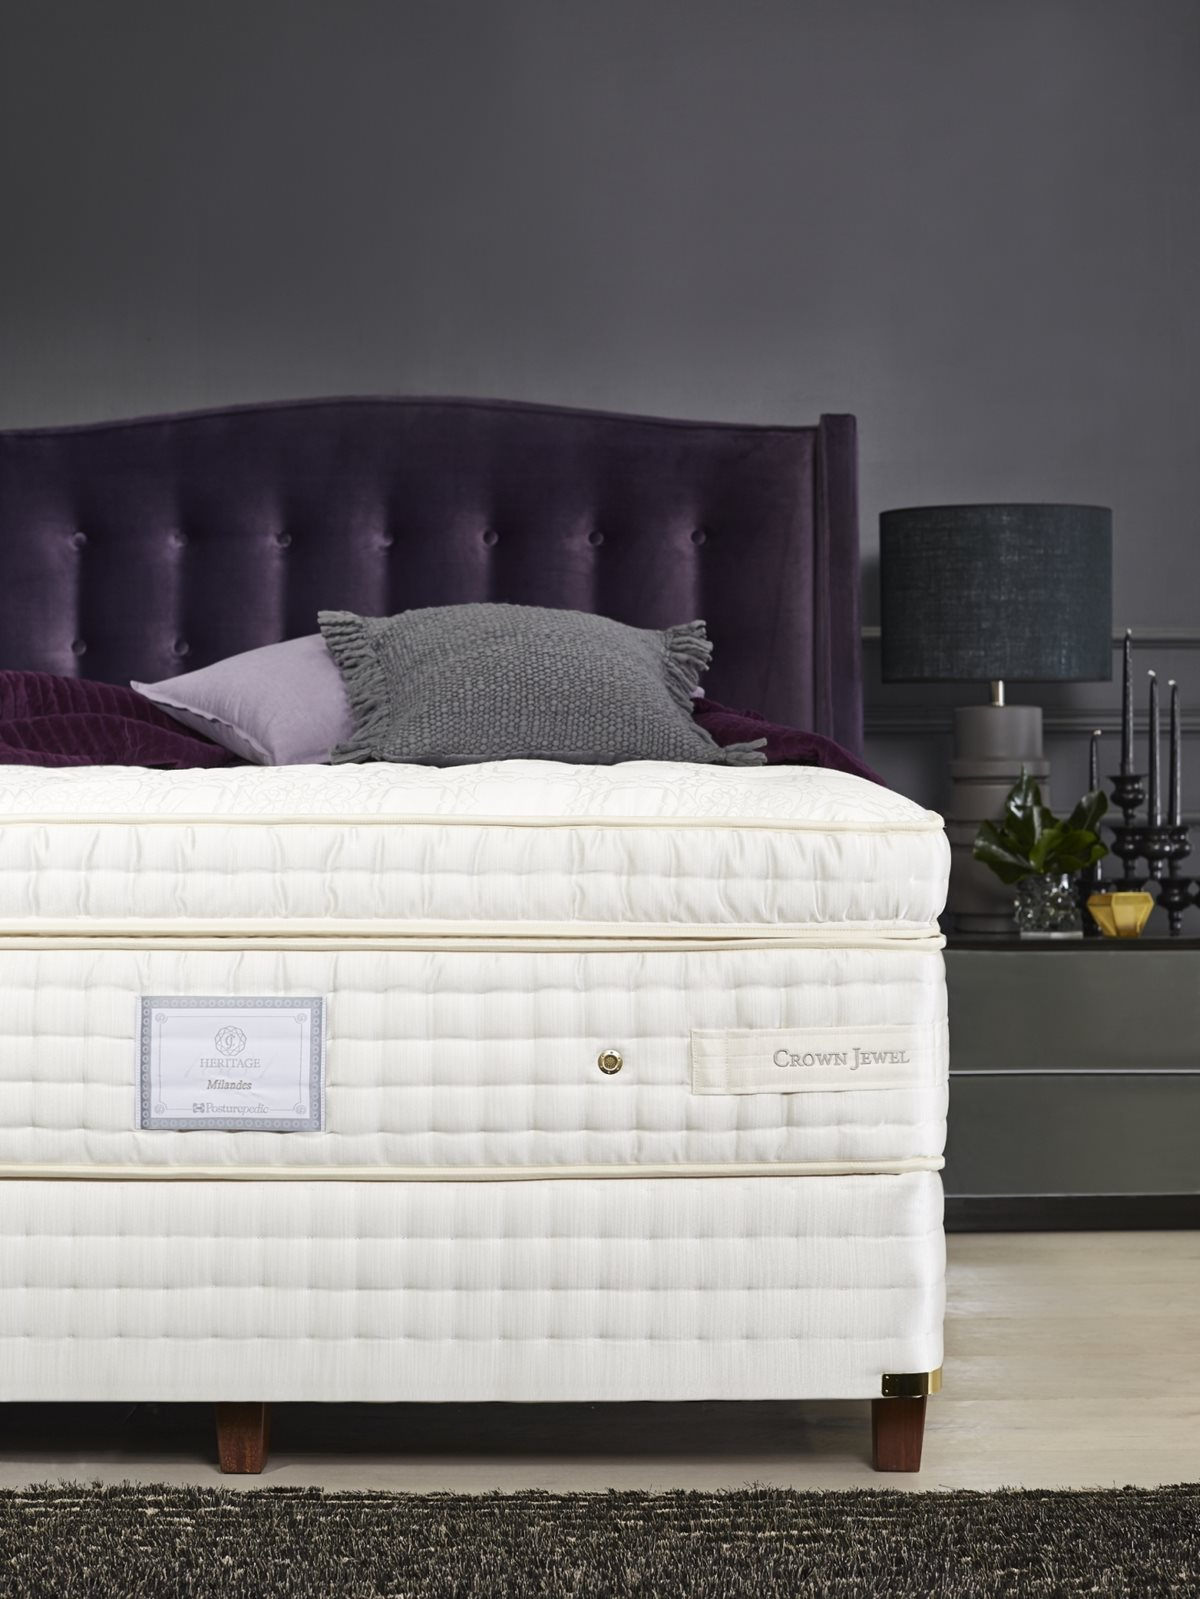 Sealy Posturepedic Crown Jewel Milandes Mattress Beds